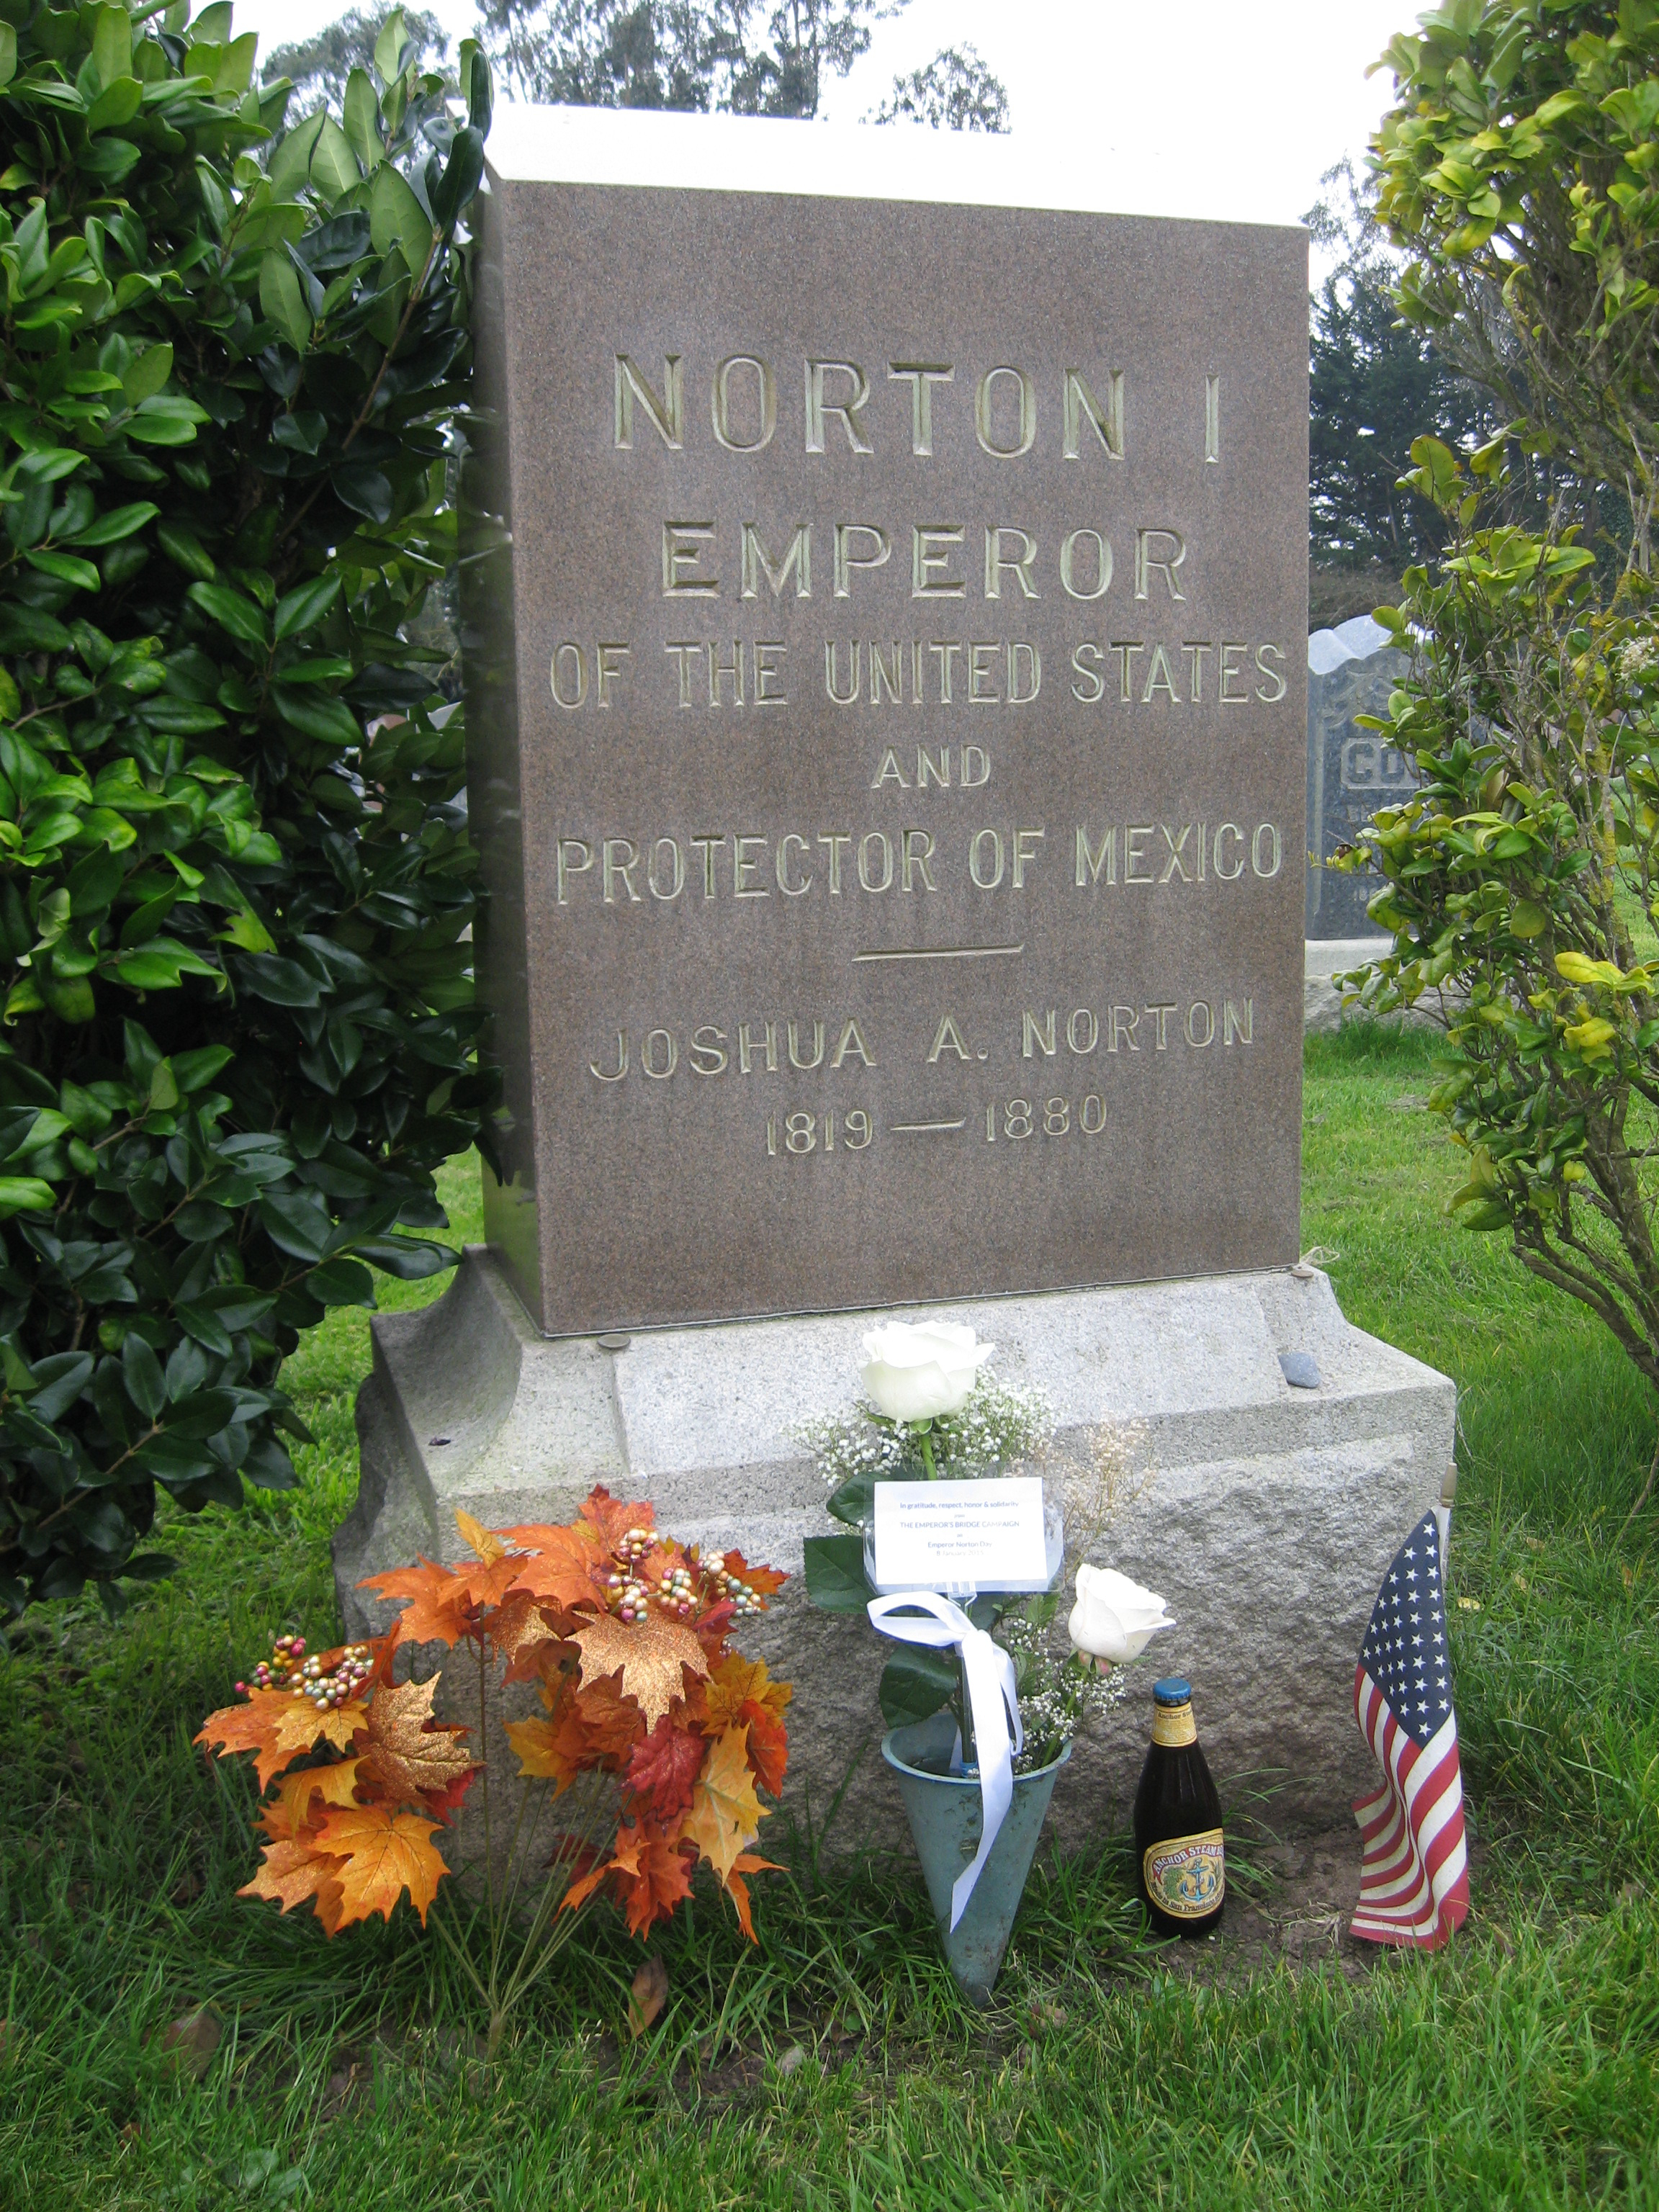 Headstone at Emperor Norton's grave in Woodlawn Memorial Park, Colma, Calif. PHOTO: John Lumea (taken on Emperor Norton Day (8 January) 2015).